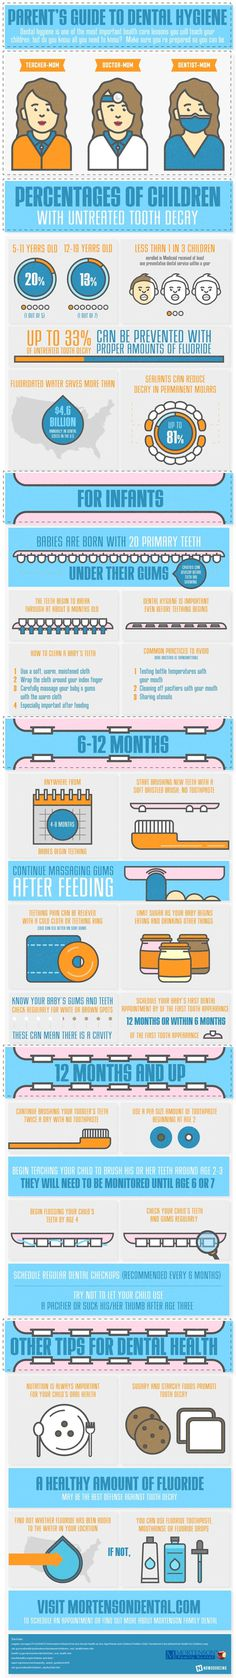 Learn the basics of dental hygiene for your kids from this infographic.There are some easy steps you can take!